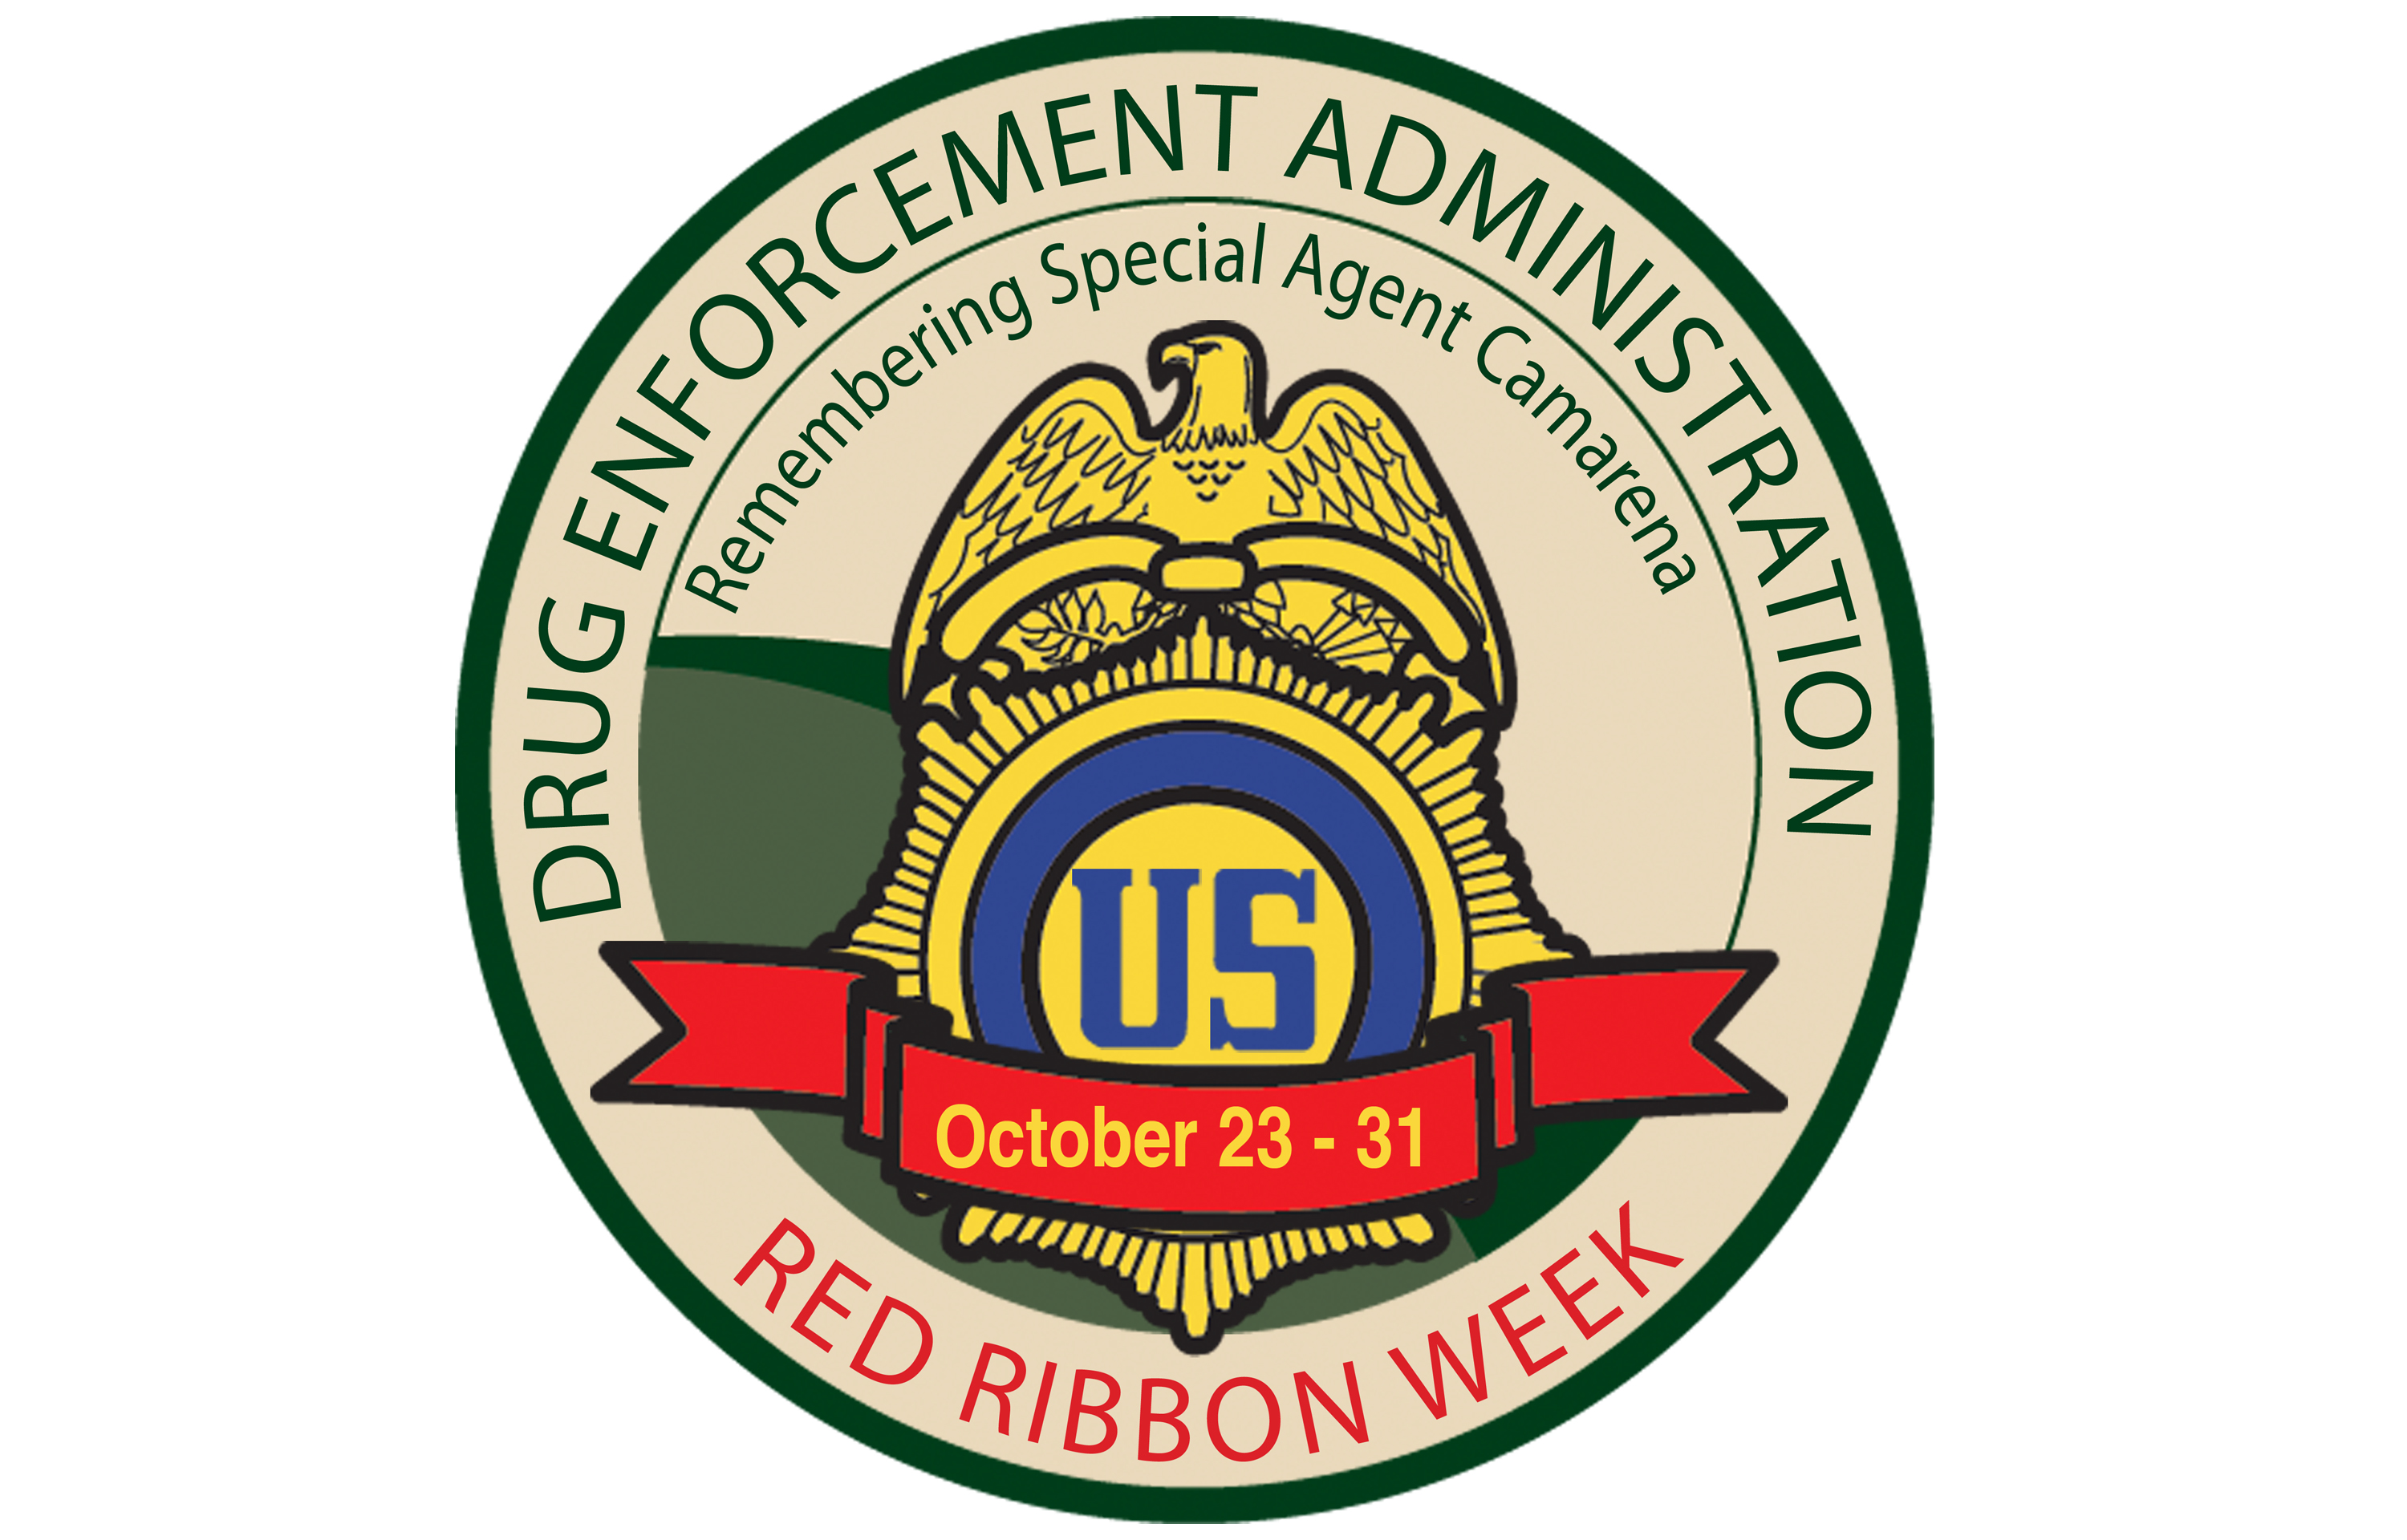 Red Ribbon Week Patch Program